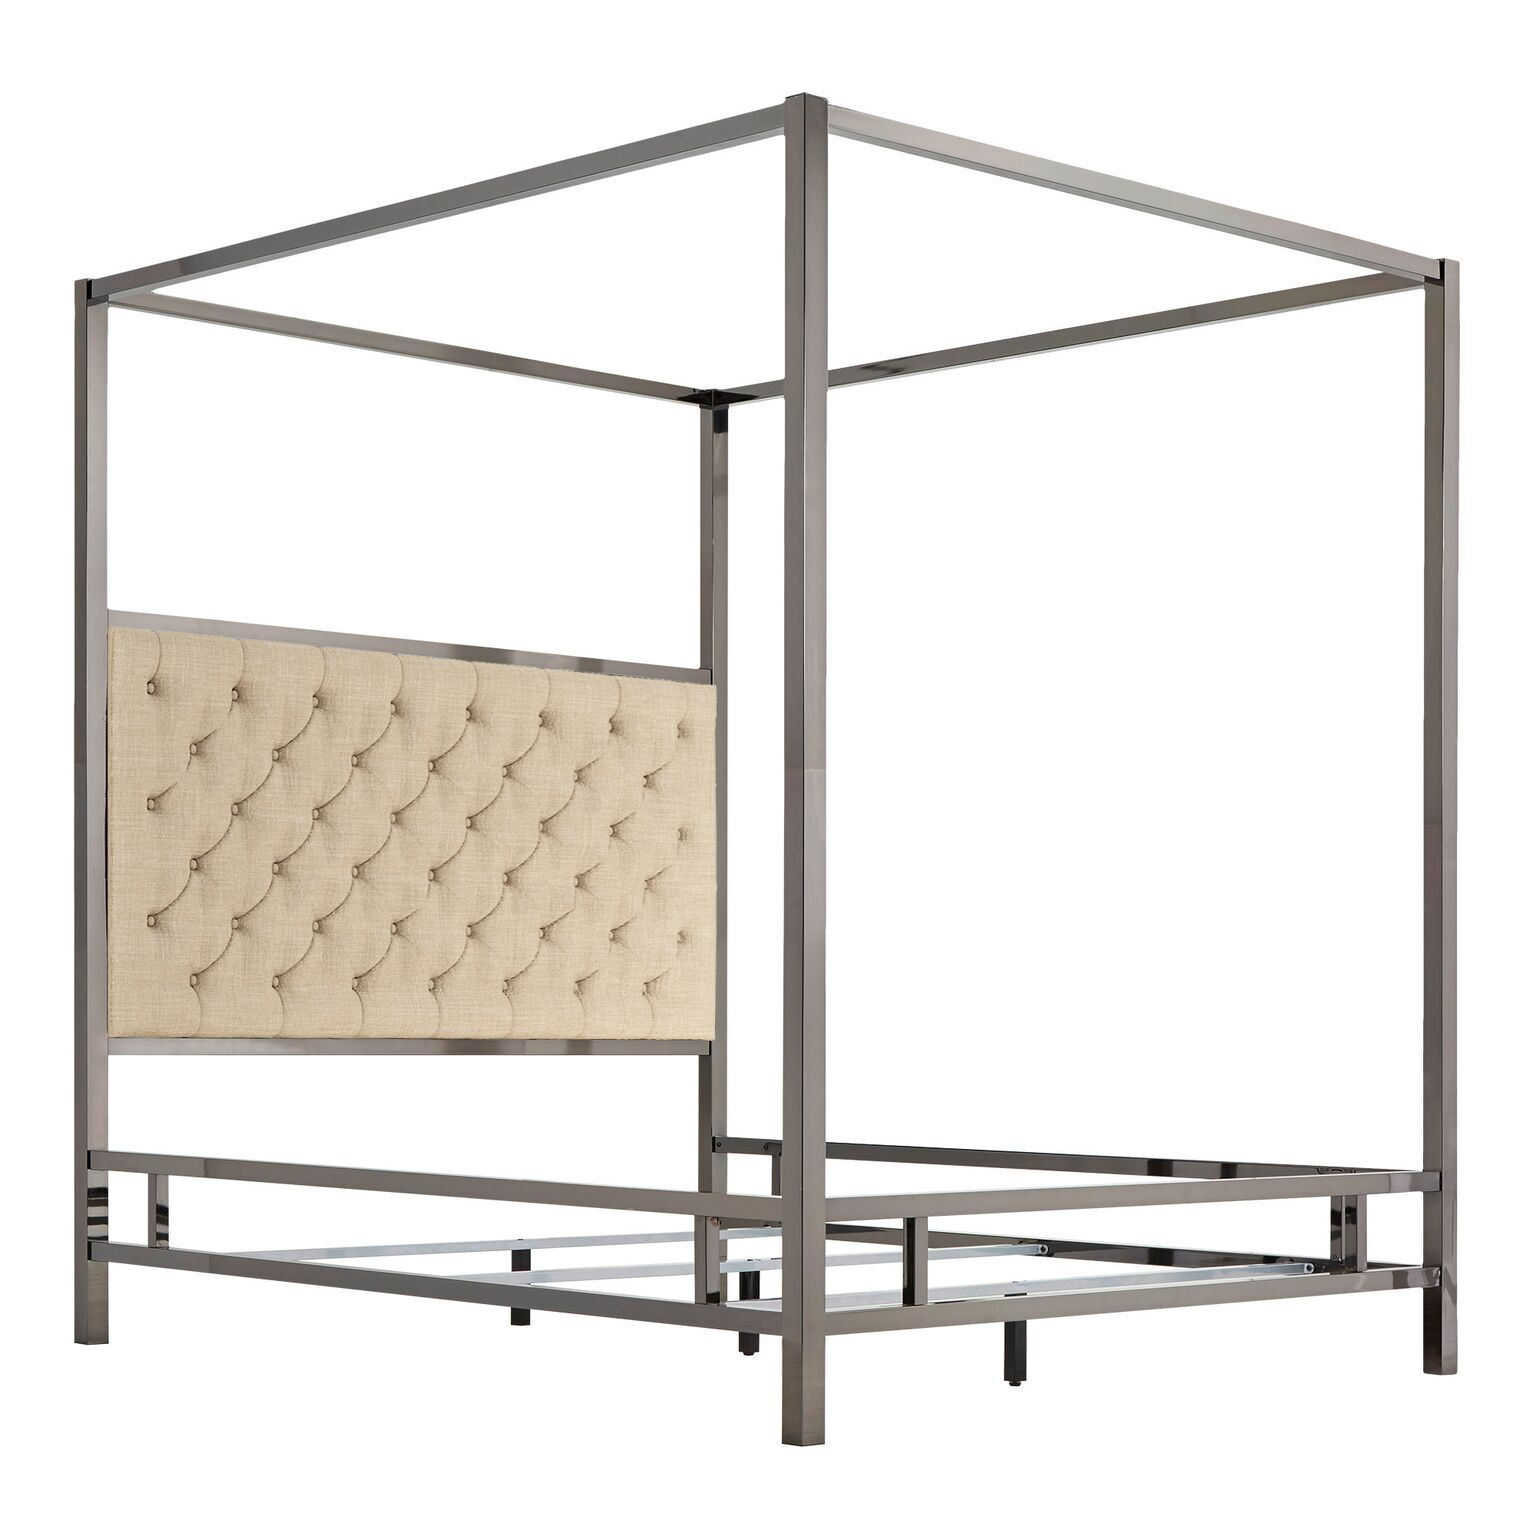 Wicklund Upholstered Canopy Bed Color (Frame/Headboard): Black Nickel/Beige, Size: King